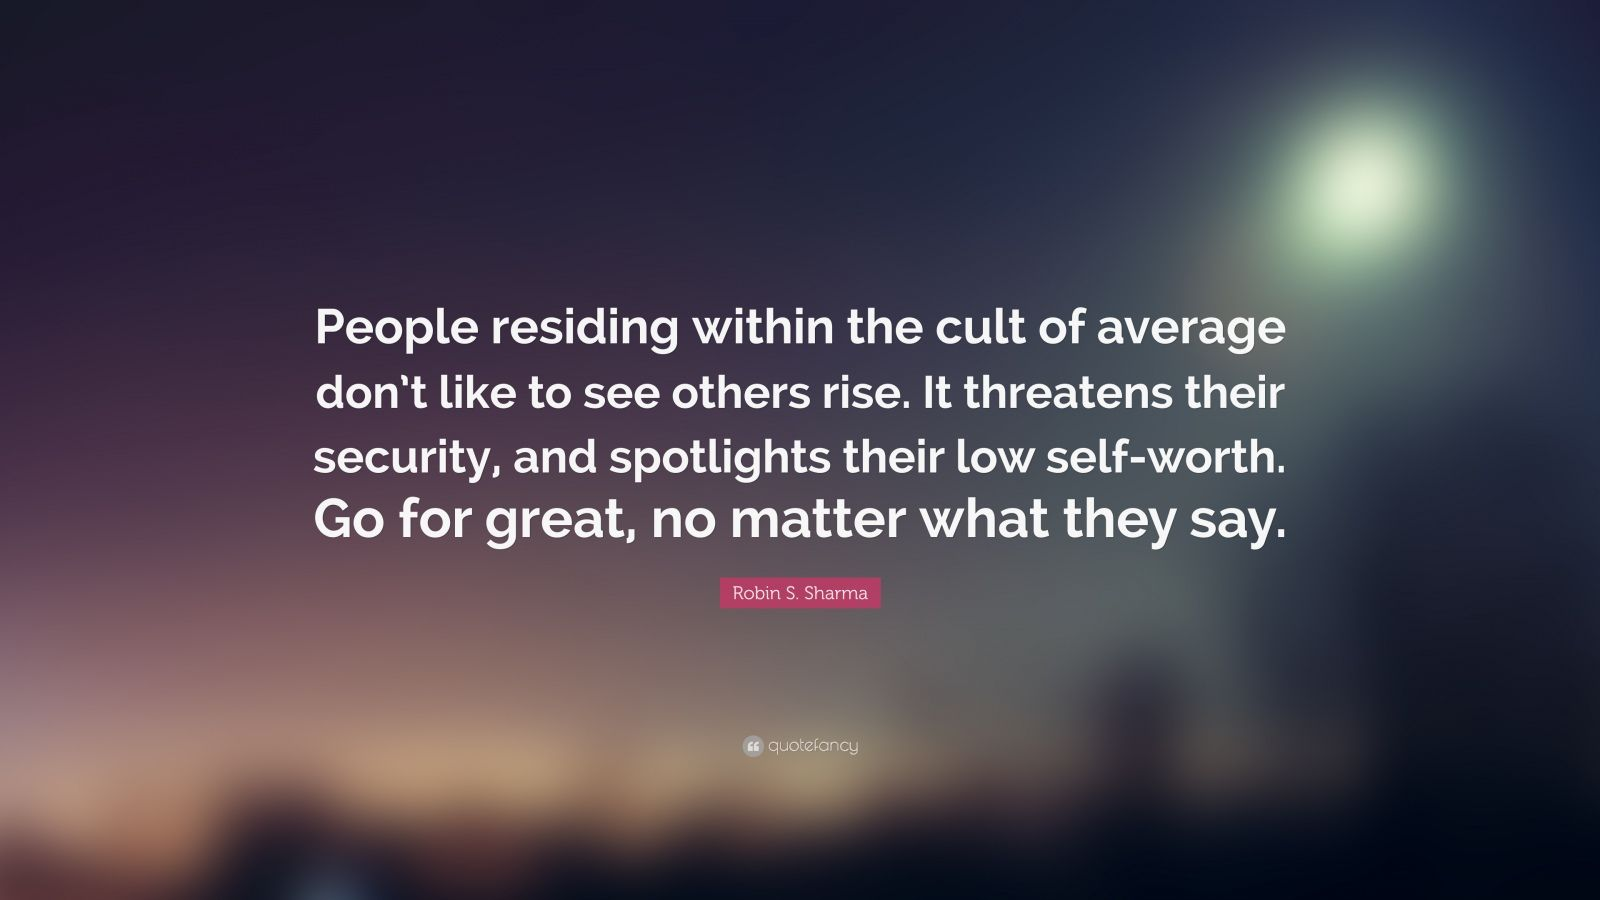 """Robin S. Sharma Quote: """"People residing within the cult of average don't like to see others rise. It threatens their security, and spotlights their low self-worth. Go for great, no matter what they say."""""""